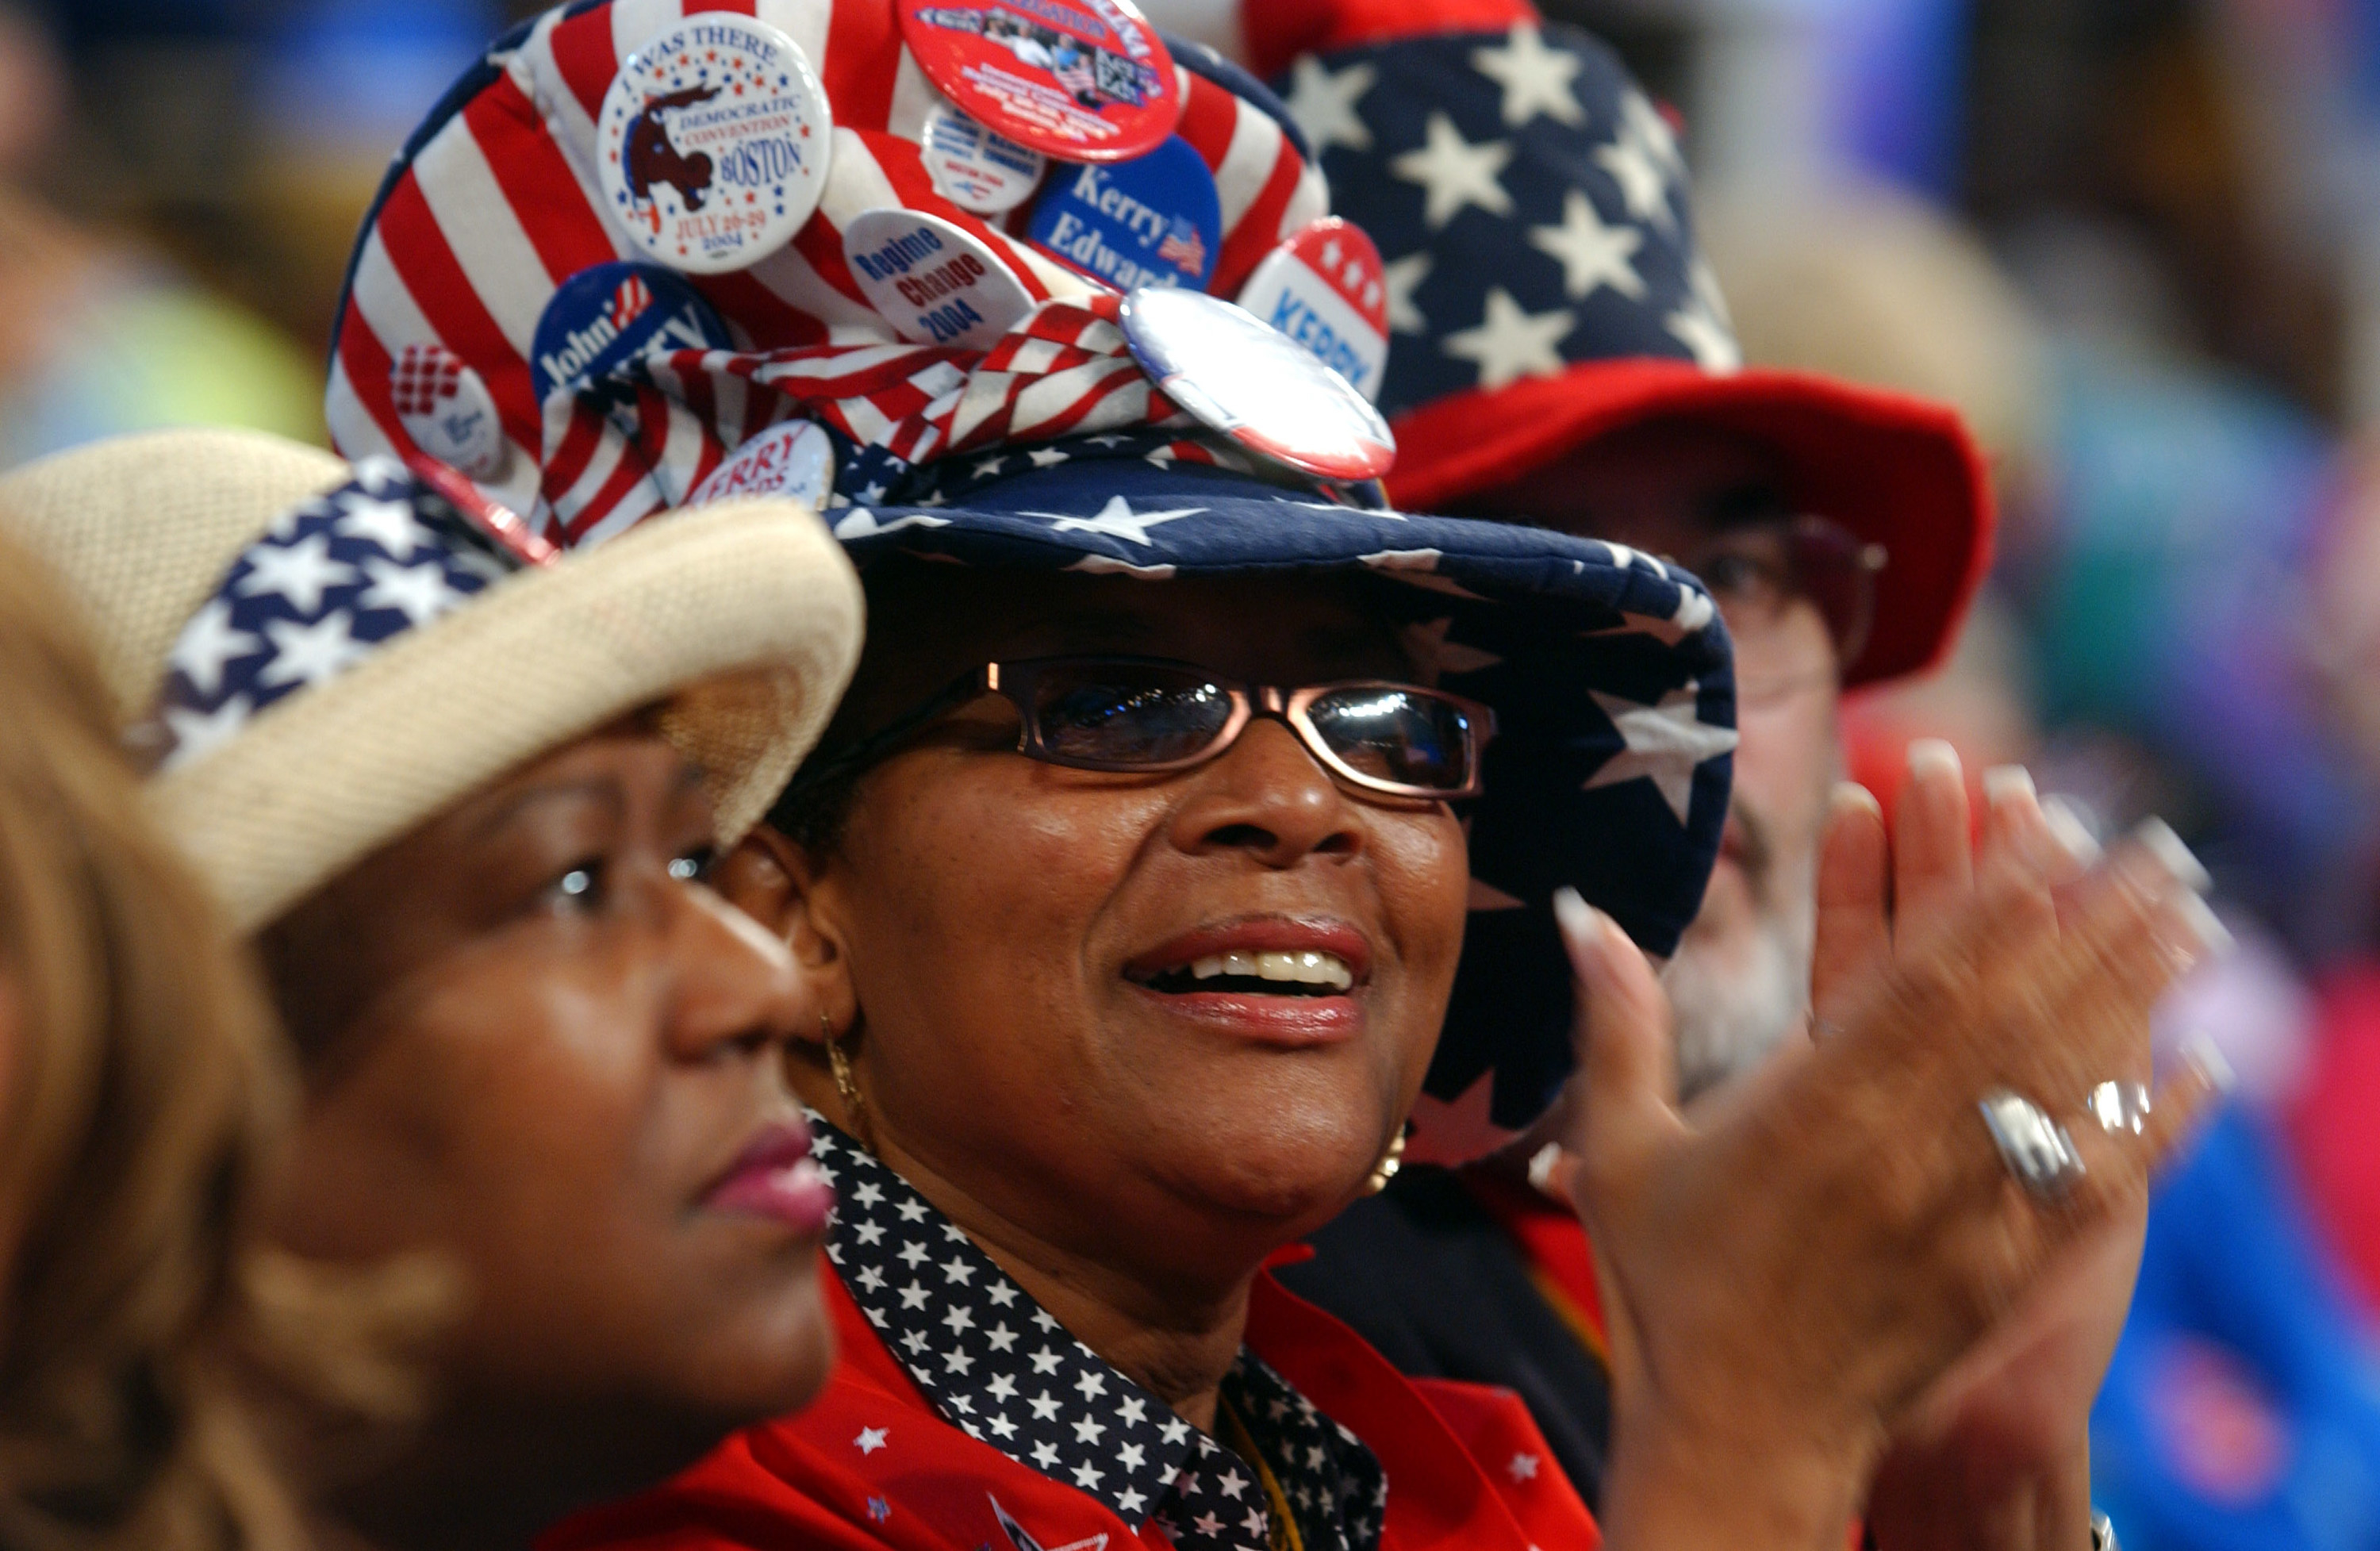 A woman in red white and blue